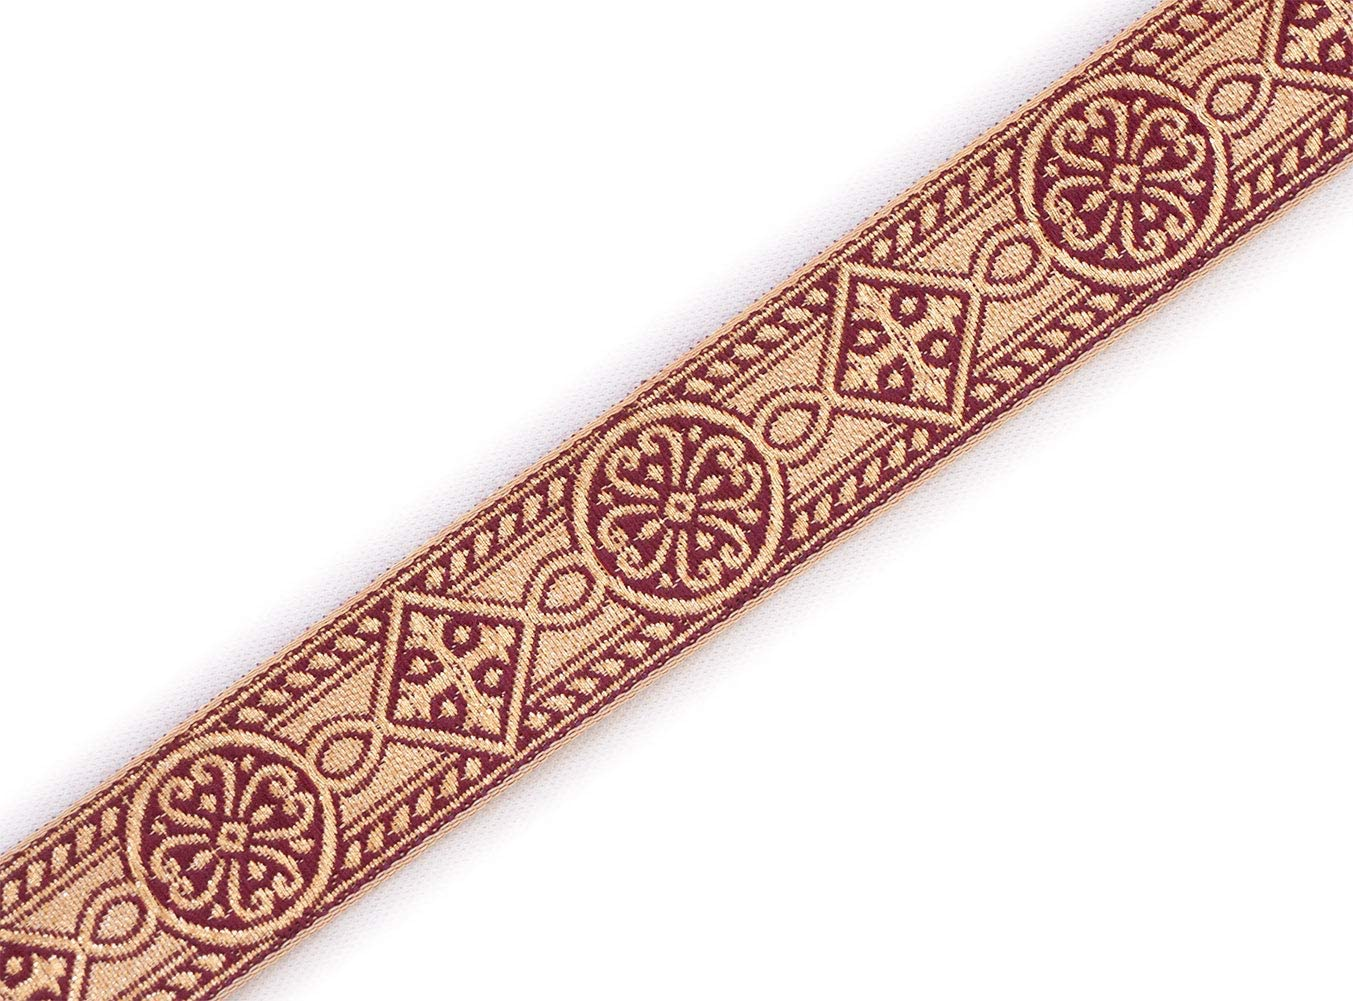 Wide Jacquard Chasuble Vestment Trim Burgundy /& Gold 2 3//8 Wide Vestment Sewing DIY 3 Yards